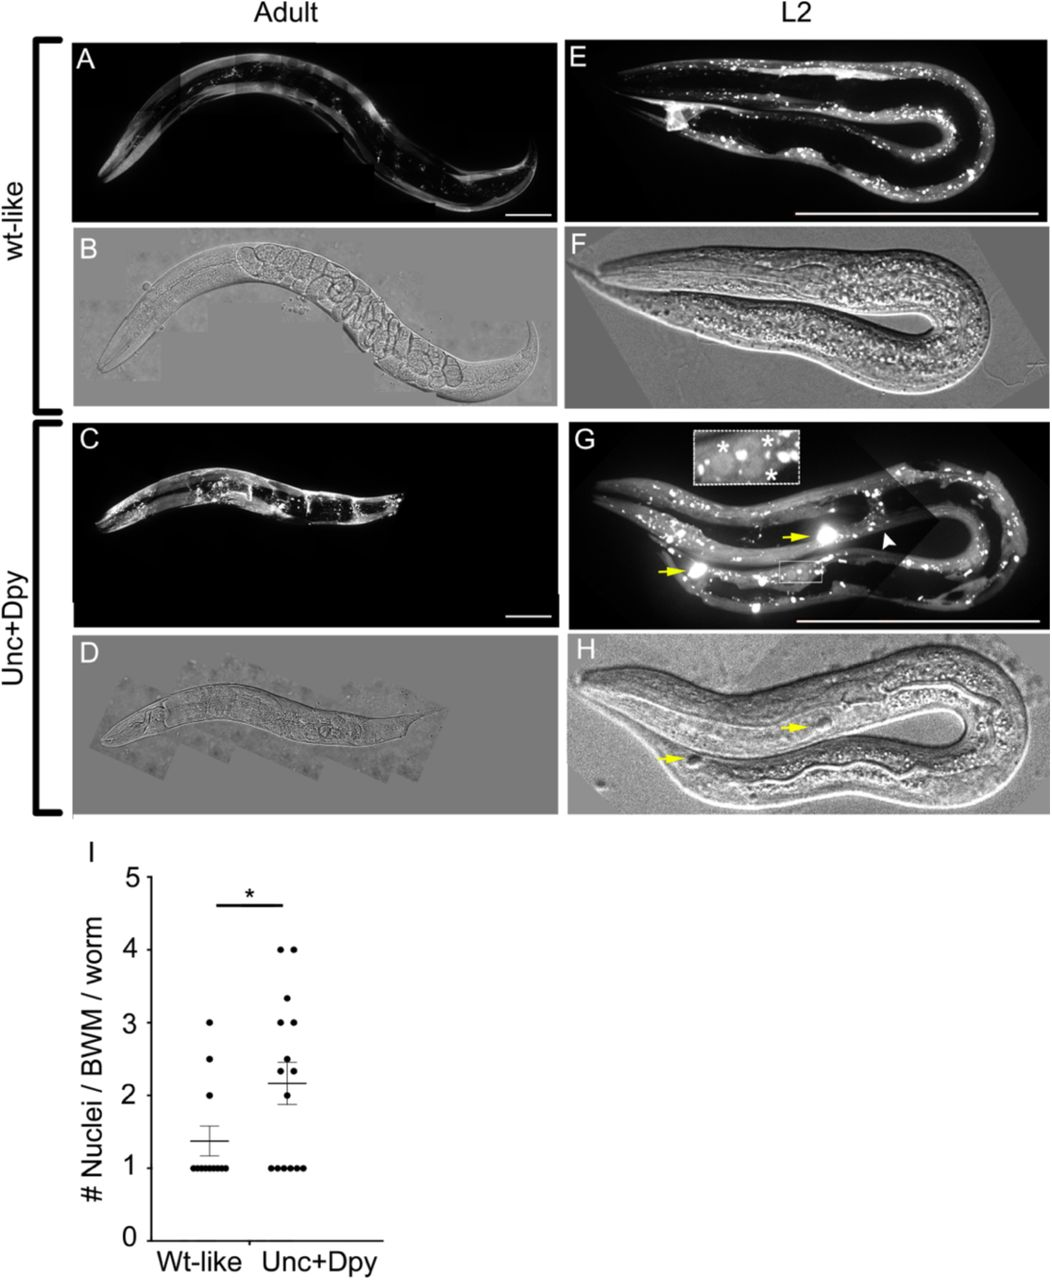 EFF-1 expression in BWMs induces their fusion ( A-C ) Confocal images of wt-like adult worms with membrane bound ( MB ) myo-3p::MB::YFP (cyan) and extrachromosomal array containing myo-3p:: EFF-1, myo-3p:: mCherry (magenta). ( D-F ) Confocal images of Unc+Dpy [ myo-3p::MB::YFP (cyan); myo-3p::EFF-1, myo-3p::mCherry] . Arrows, unfused BWMs with MB (cyan). Note only two unfused BWMs, all the others appear fused with no MB separating them. Insets correspond to white-dotted area. Scale bars 100 µm. See also Movie S1.